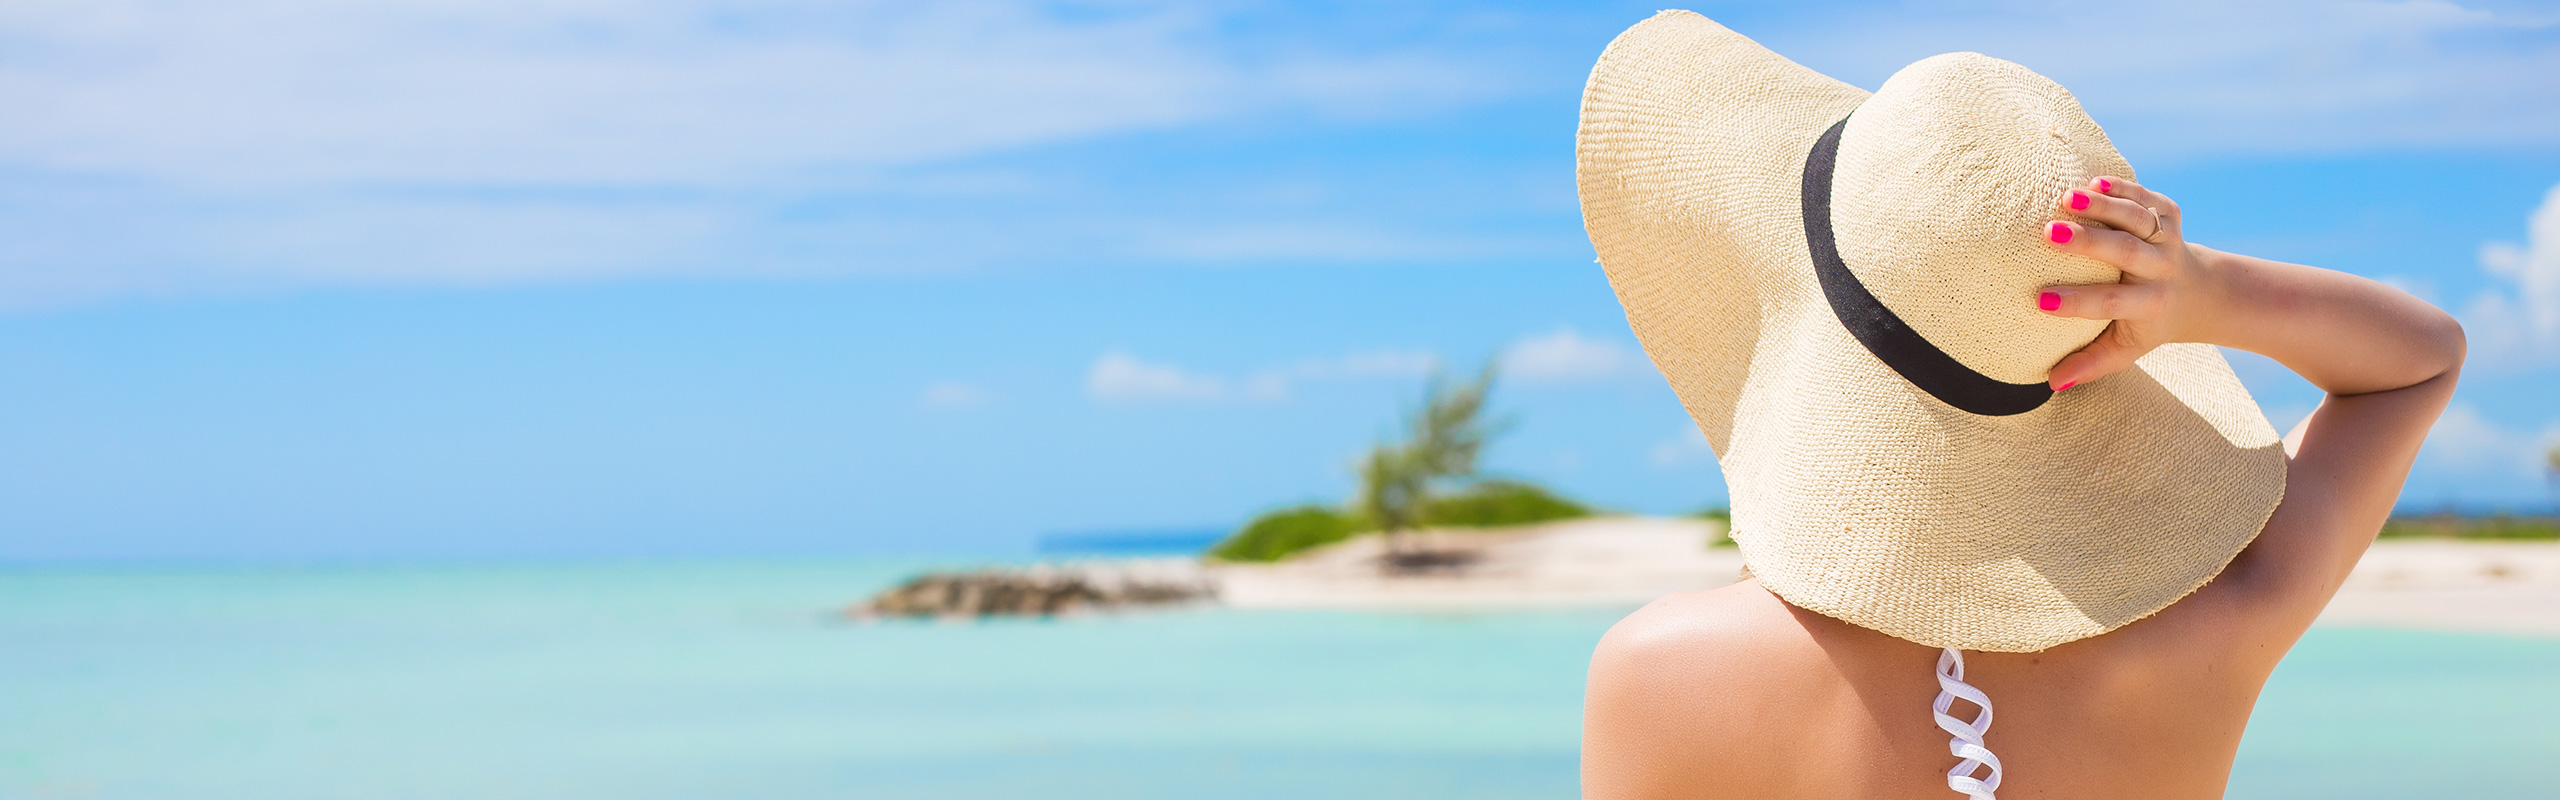 Skin Cancer Specialists - Bayside Dermatology